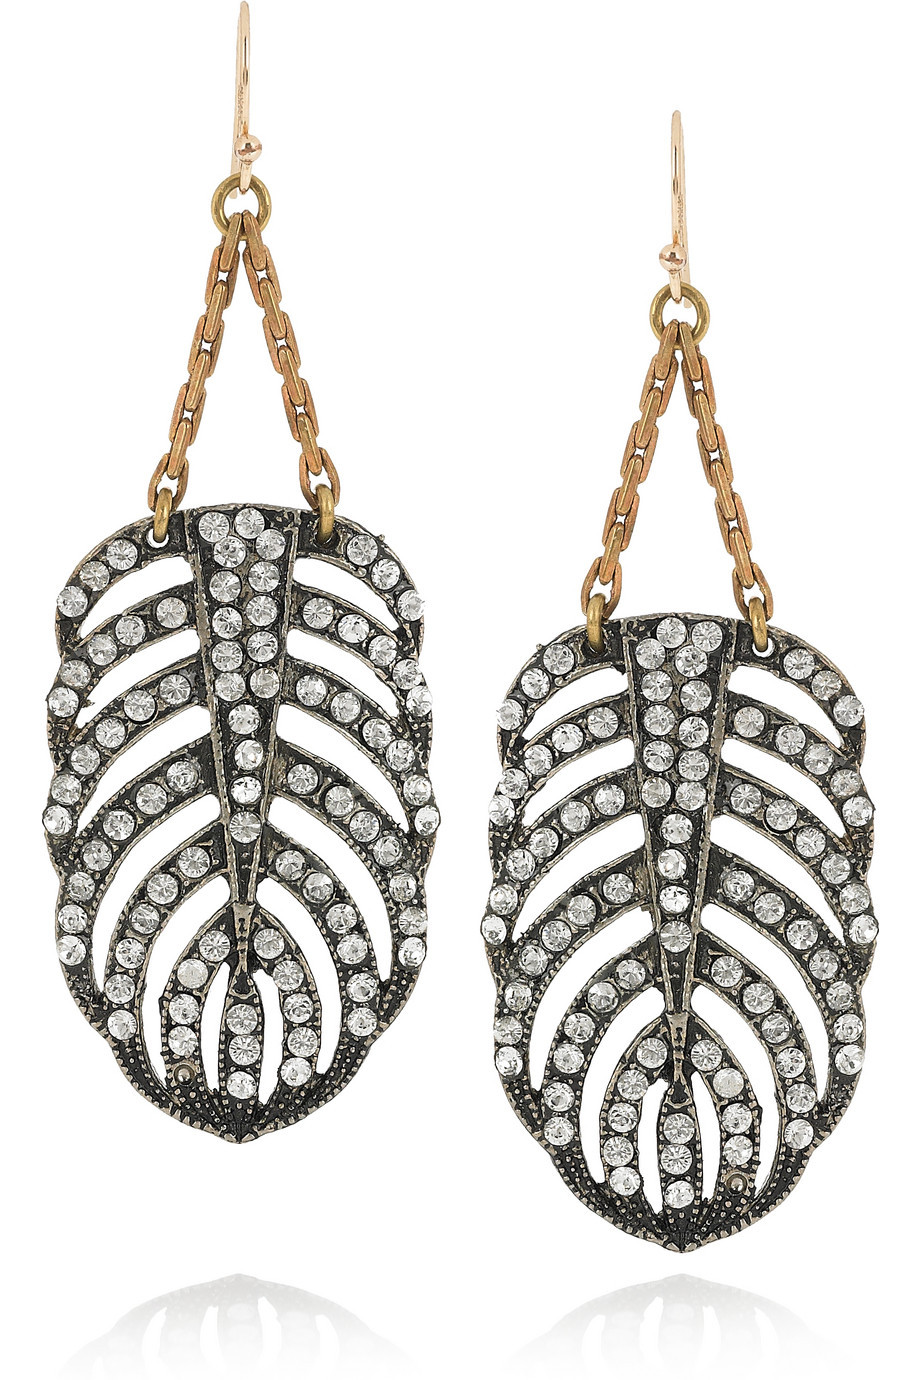 Brides-lamd-wedding-day-accessories-from-net-a-porter-1.full